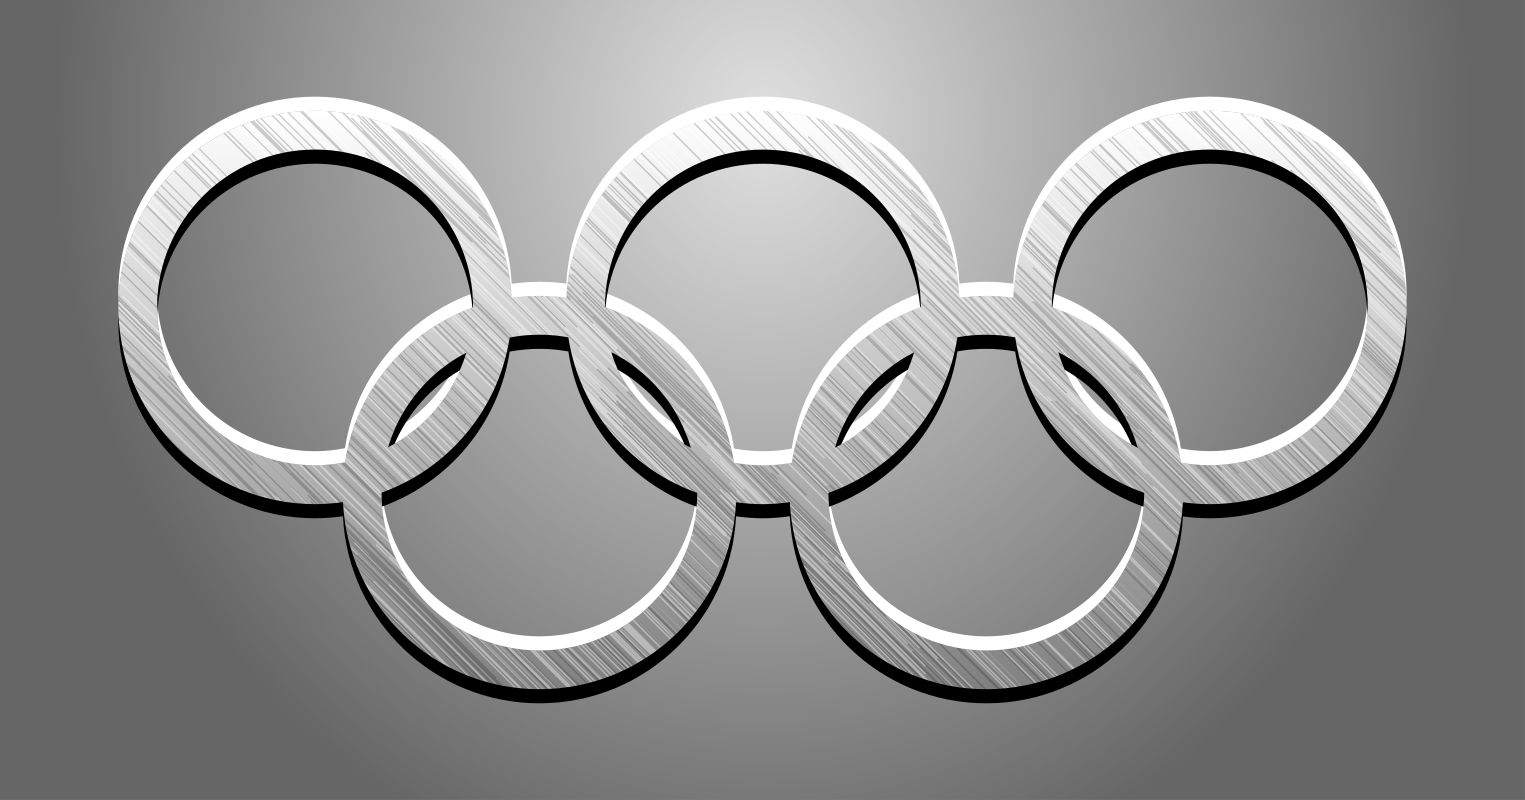 Olympic Rings 3 by gustavorezende - Another version.